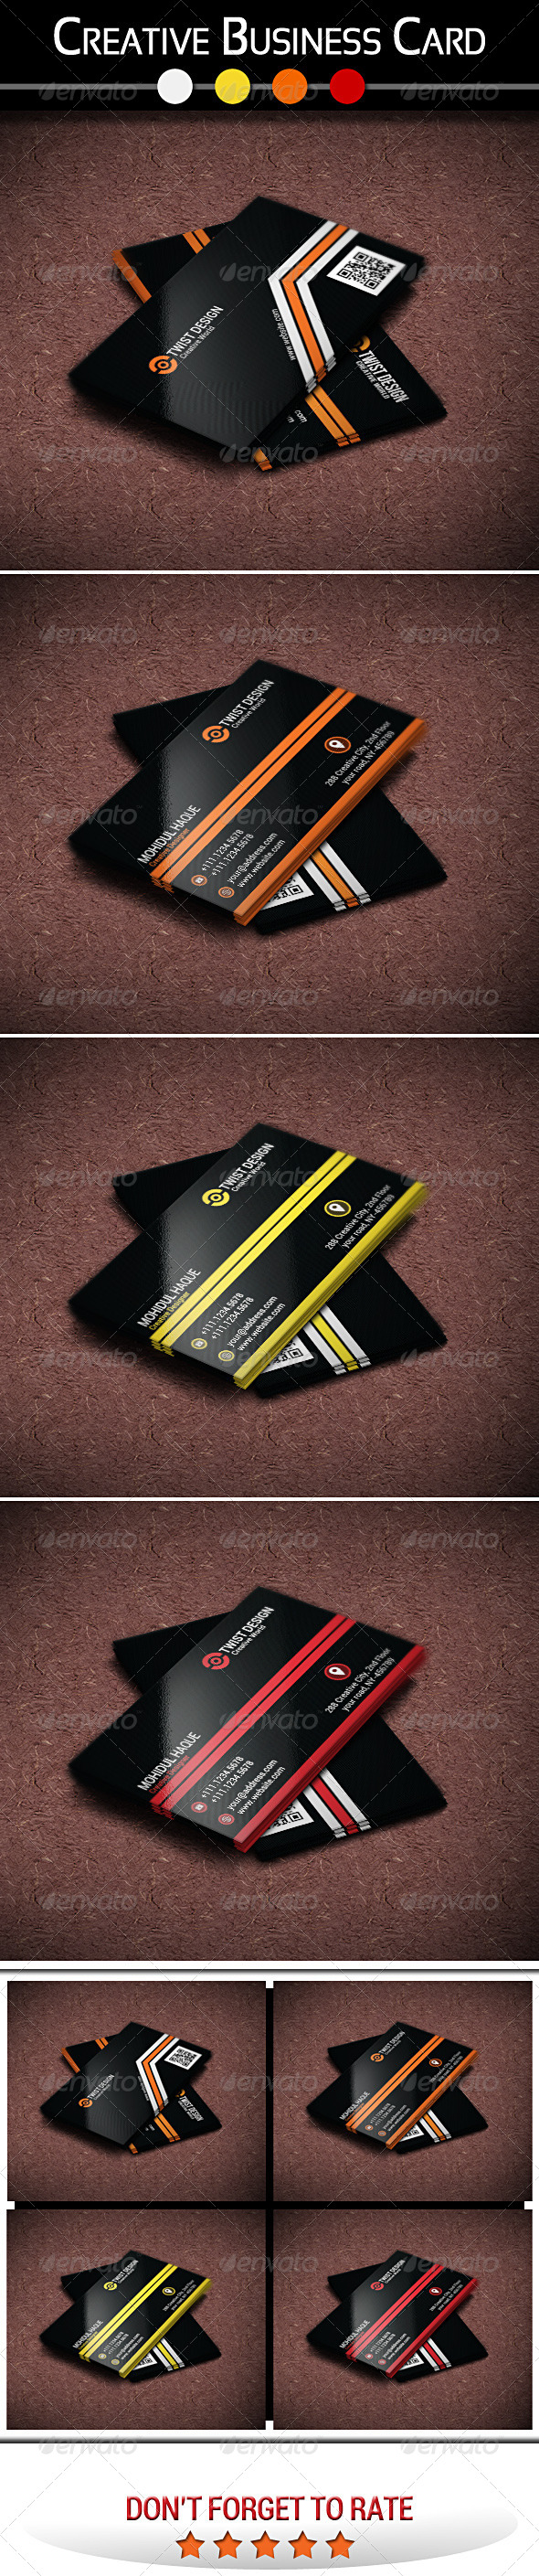 Creative Business Card V-2 - Creative Business Cards